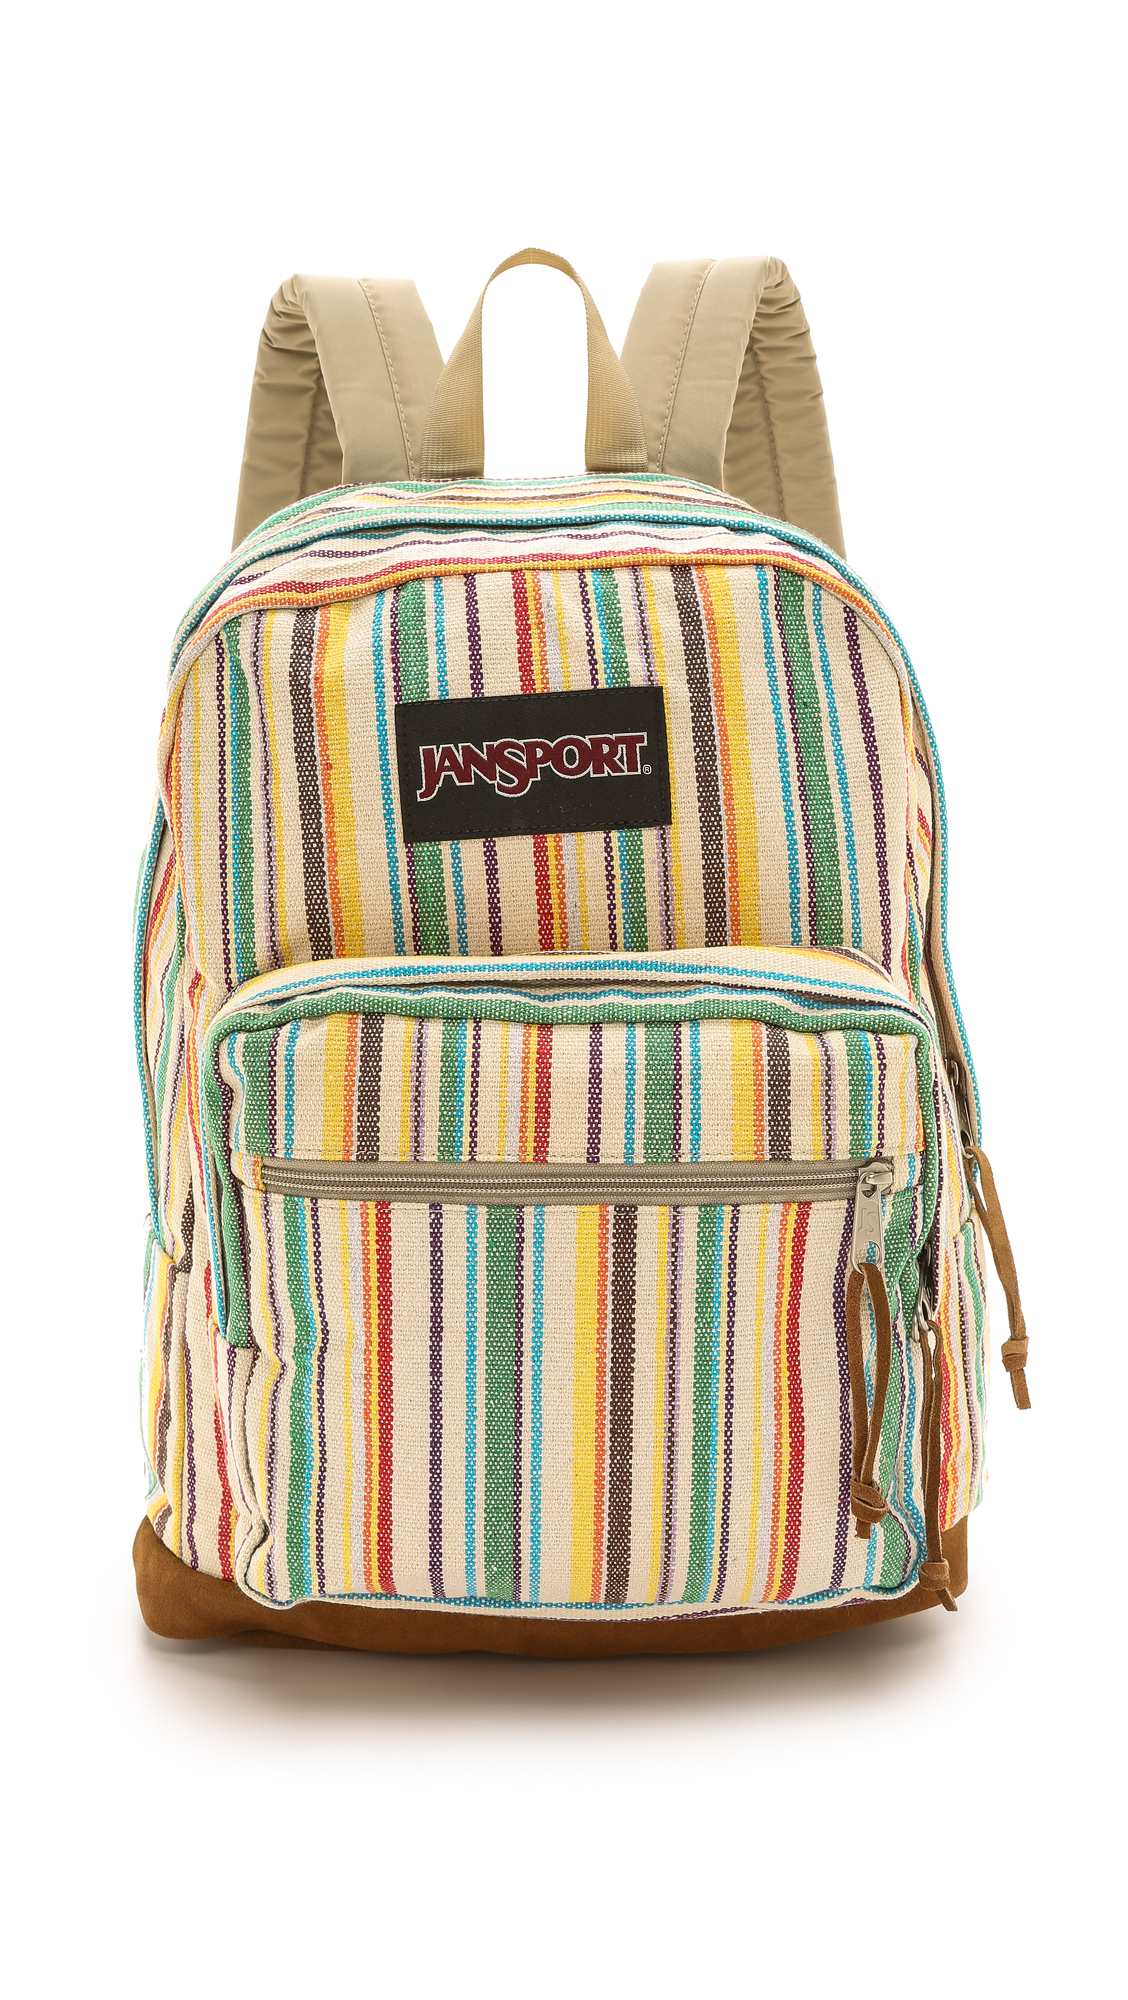 Jansport Right Pack Expressions Backpack - Multi Weave